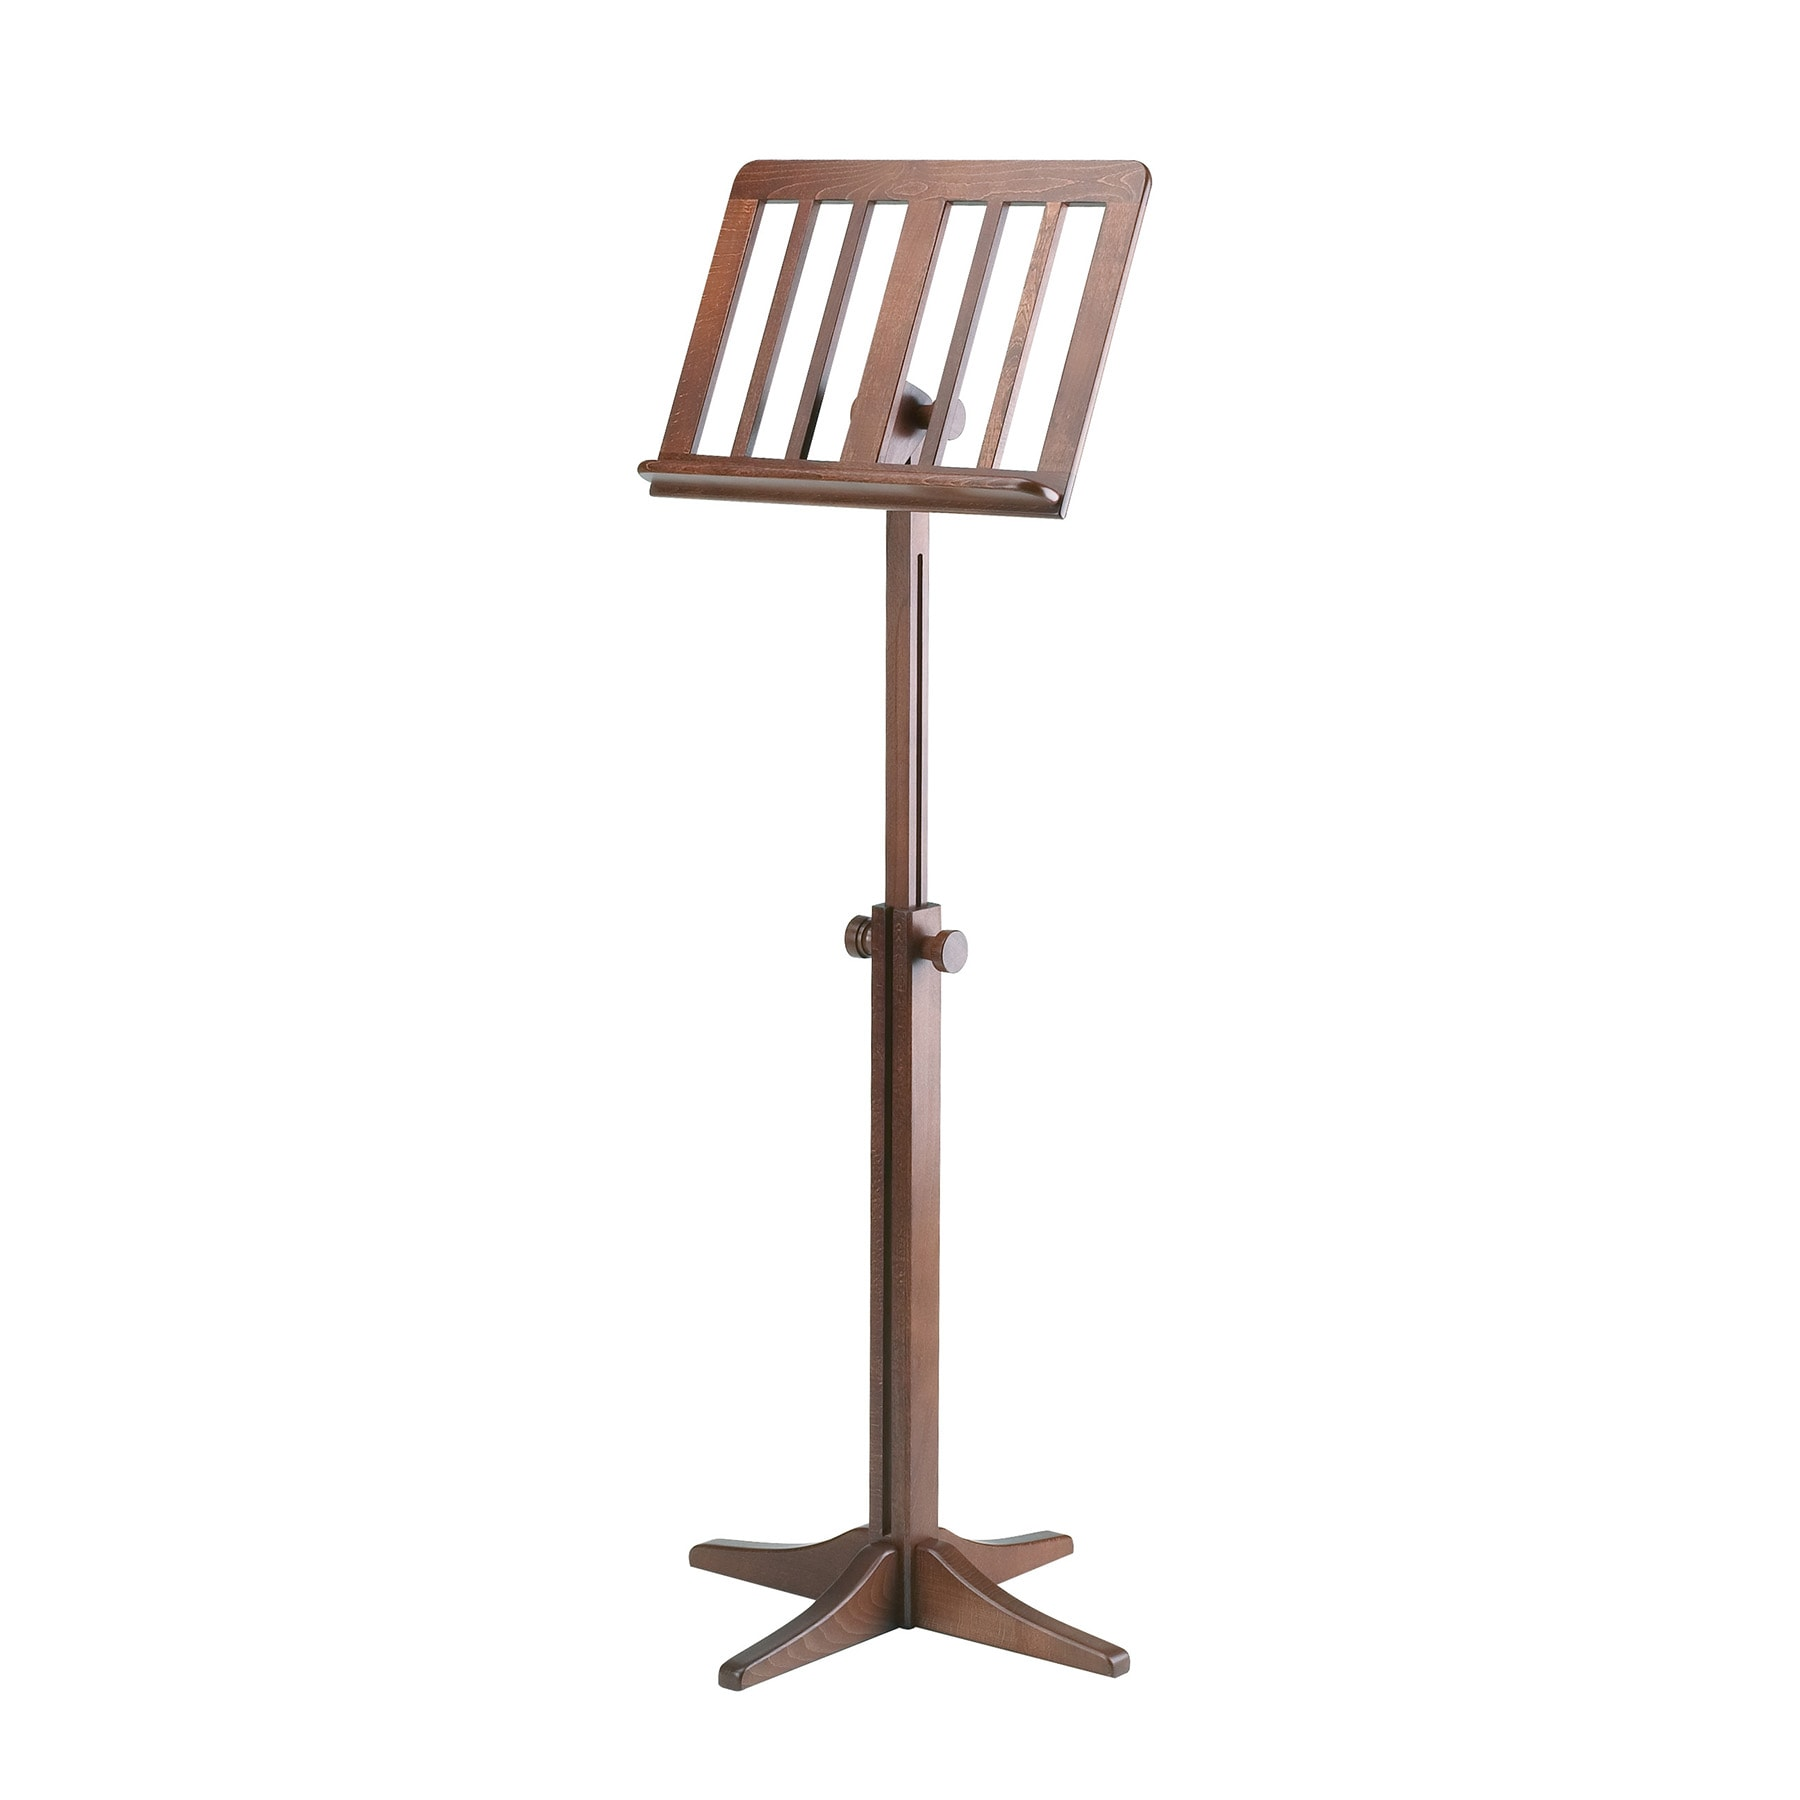 KM116_1 - Wooden music stand